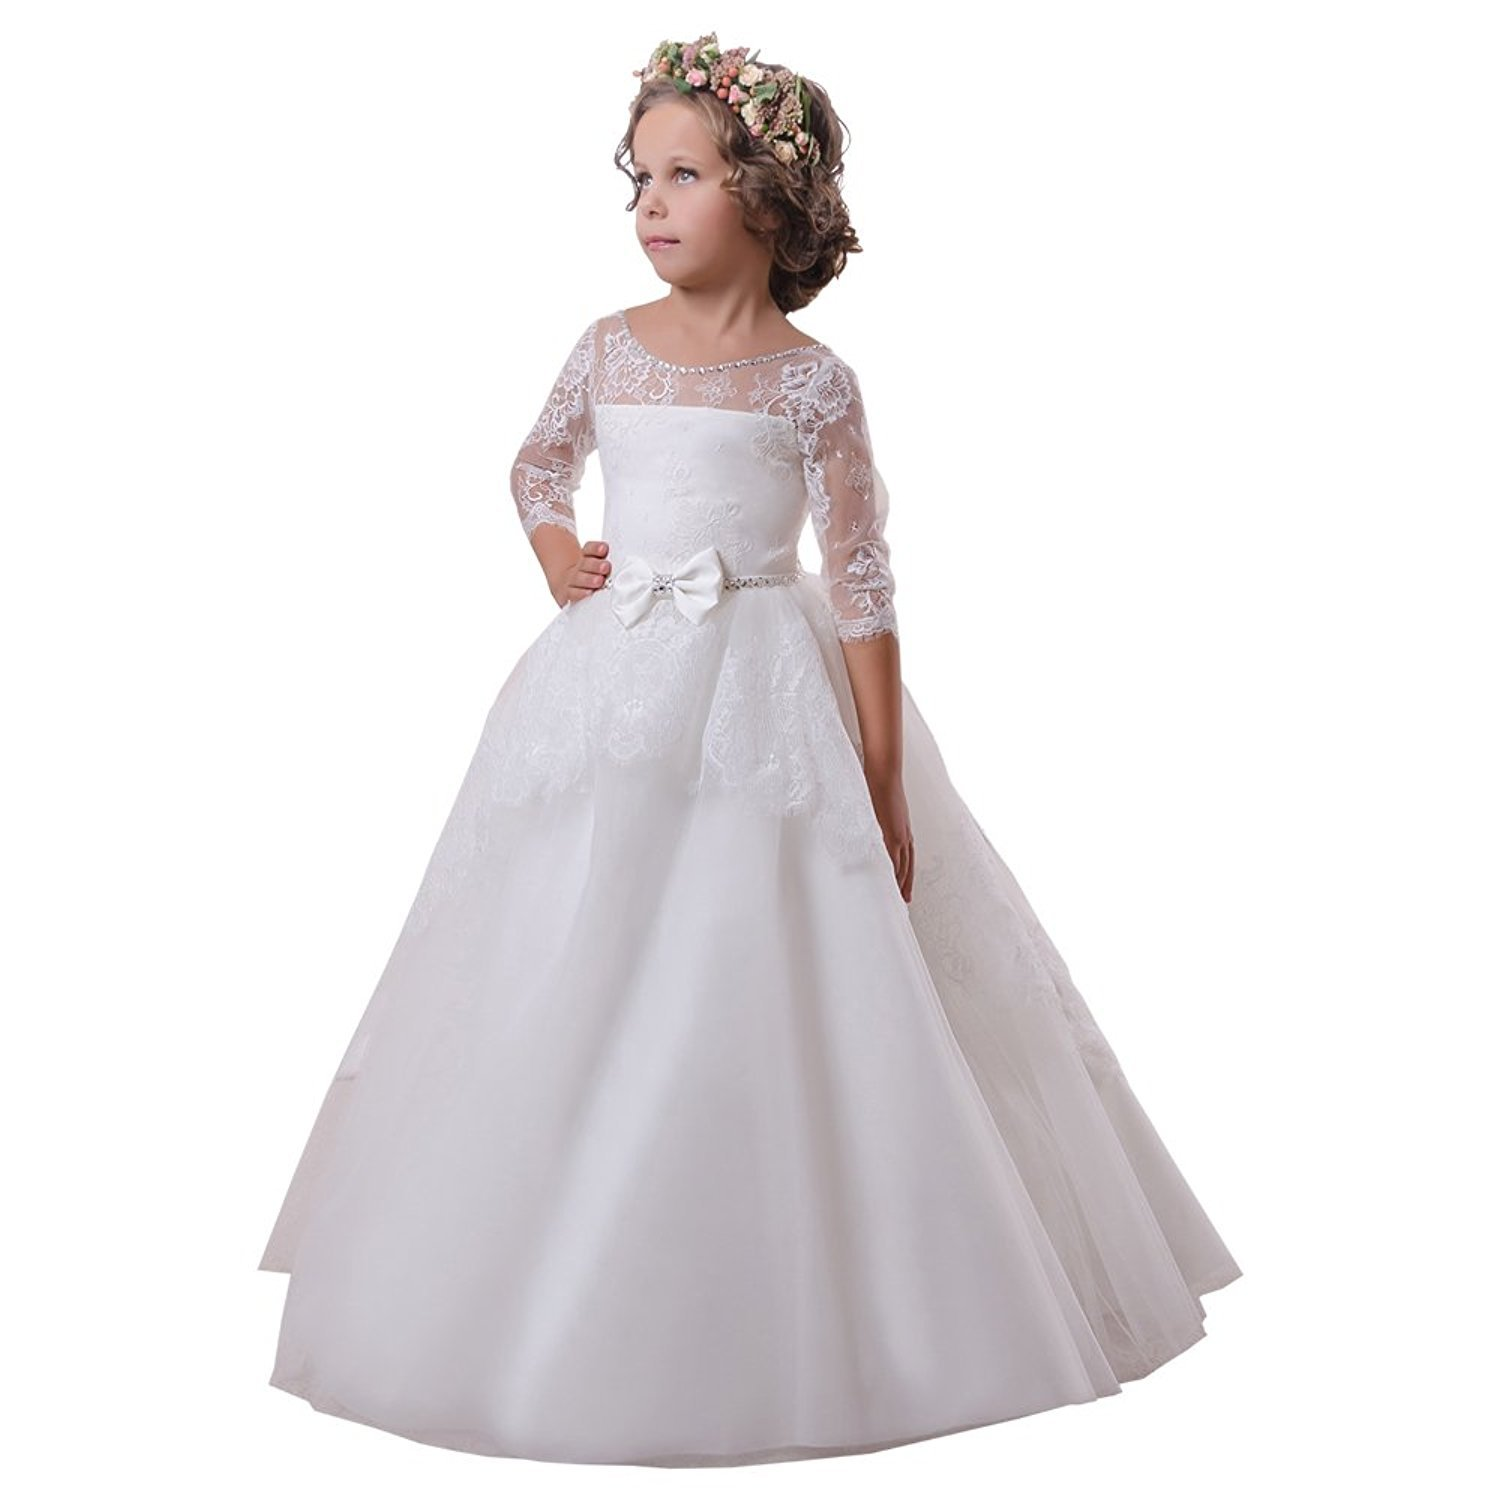 Amazon.com: LovelyGirl Romance Communion Dress Lace Up Bead Belt Tulle Ball Gown 2-12 Year Old KH021: Clothing